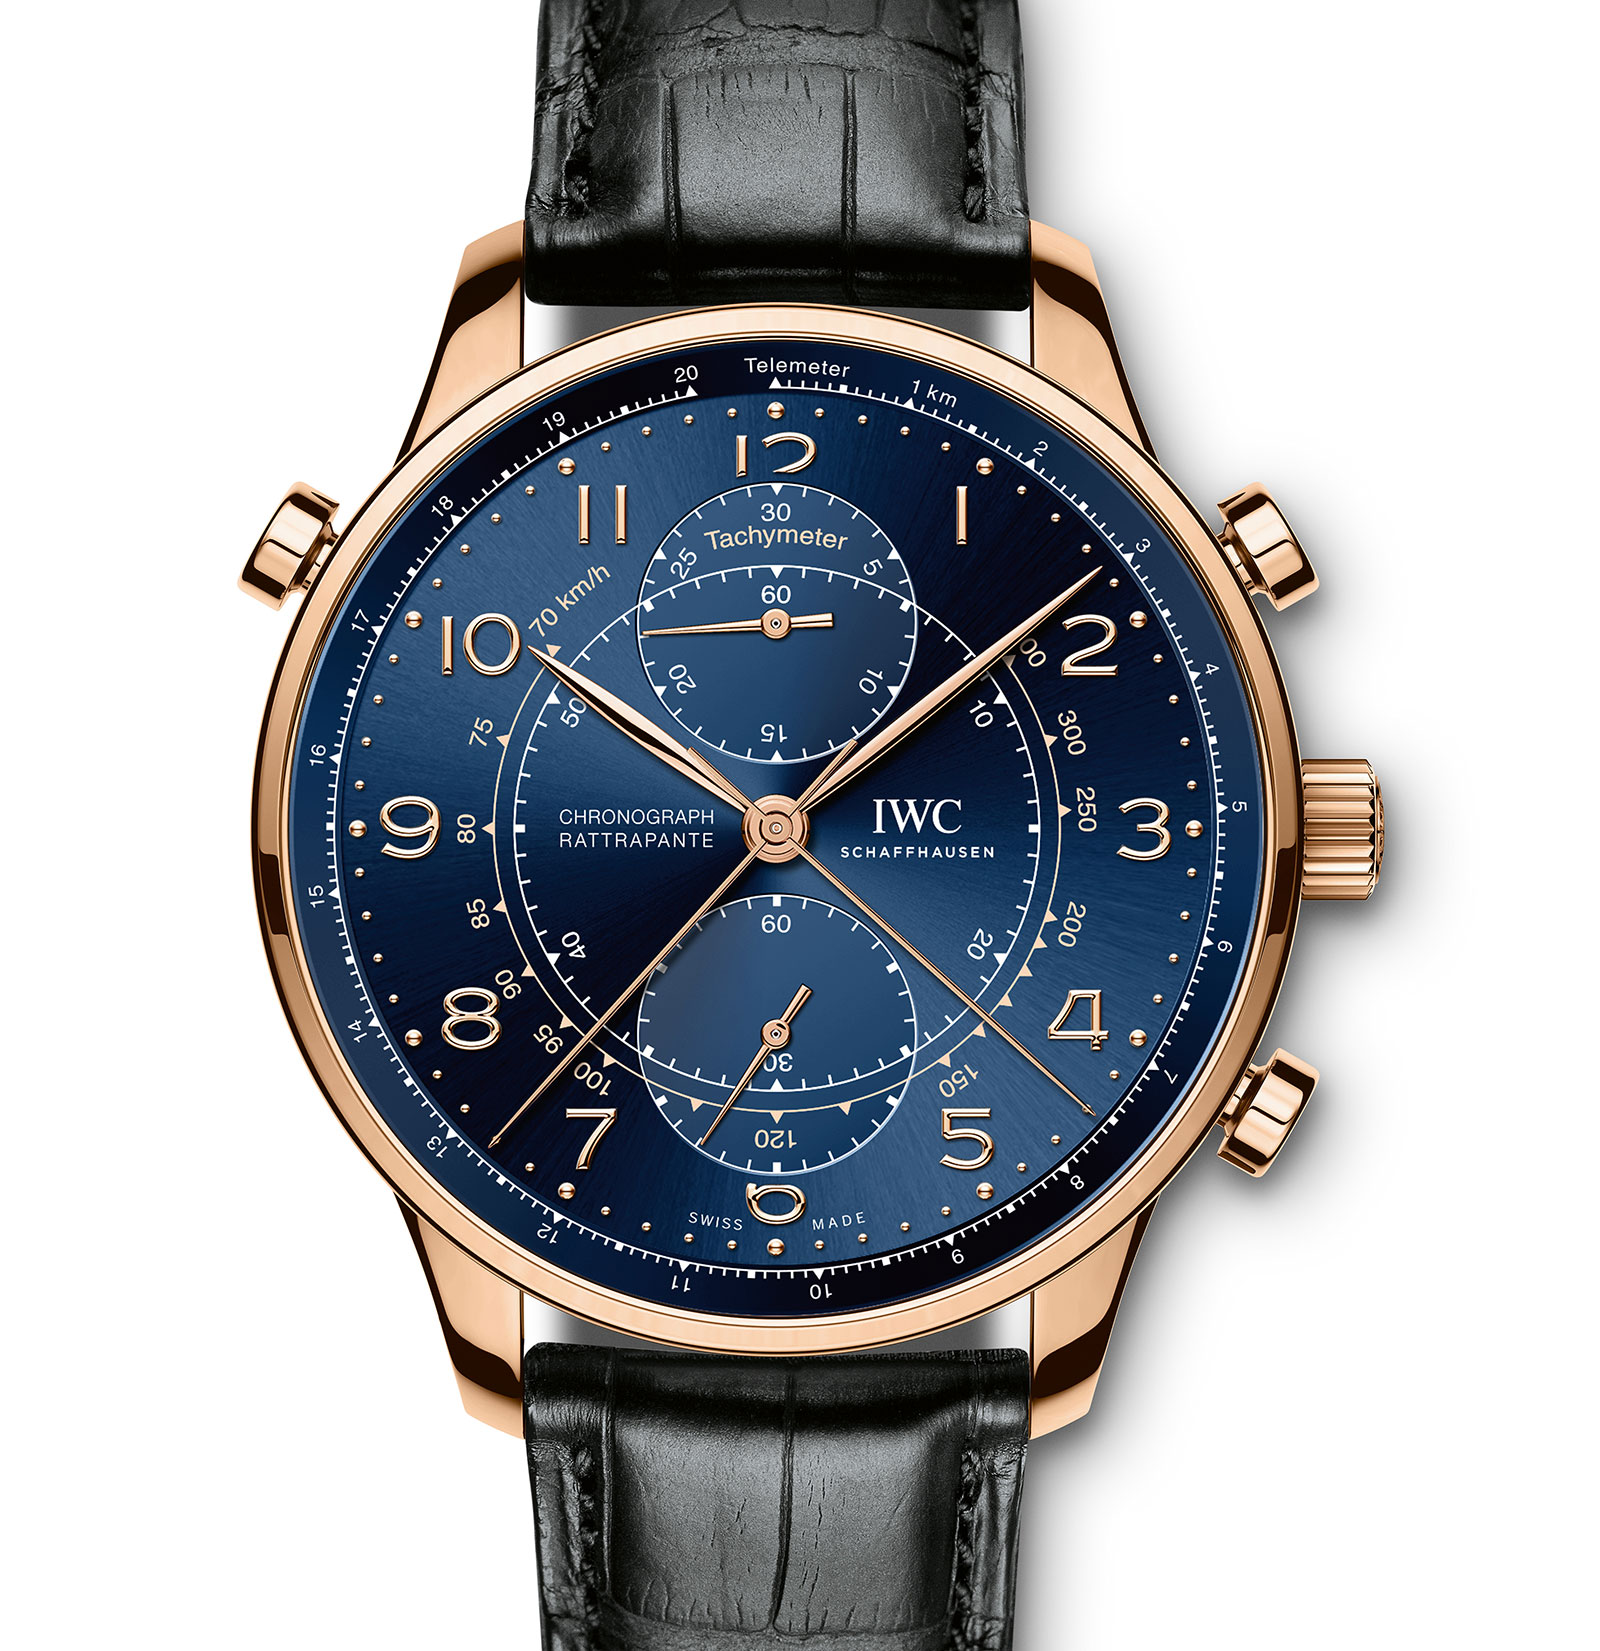 IWC Introduces the Portugieser Chronograph Rattrapante ...